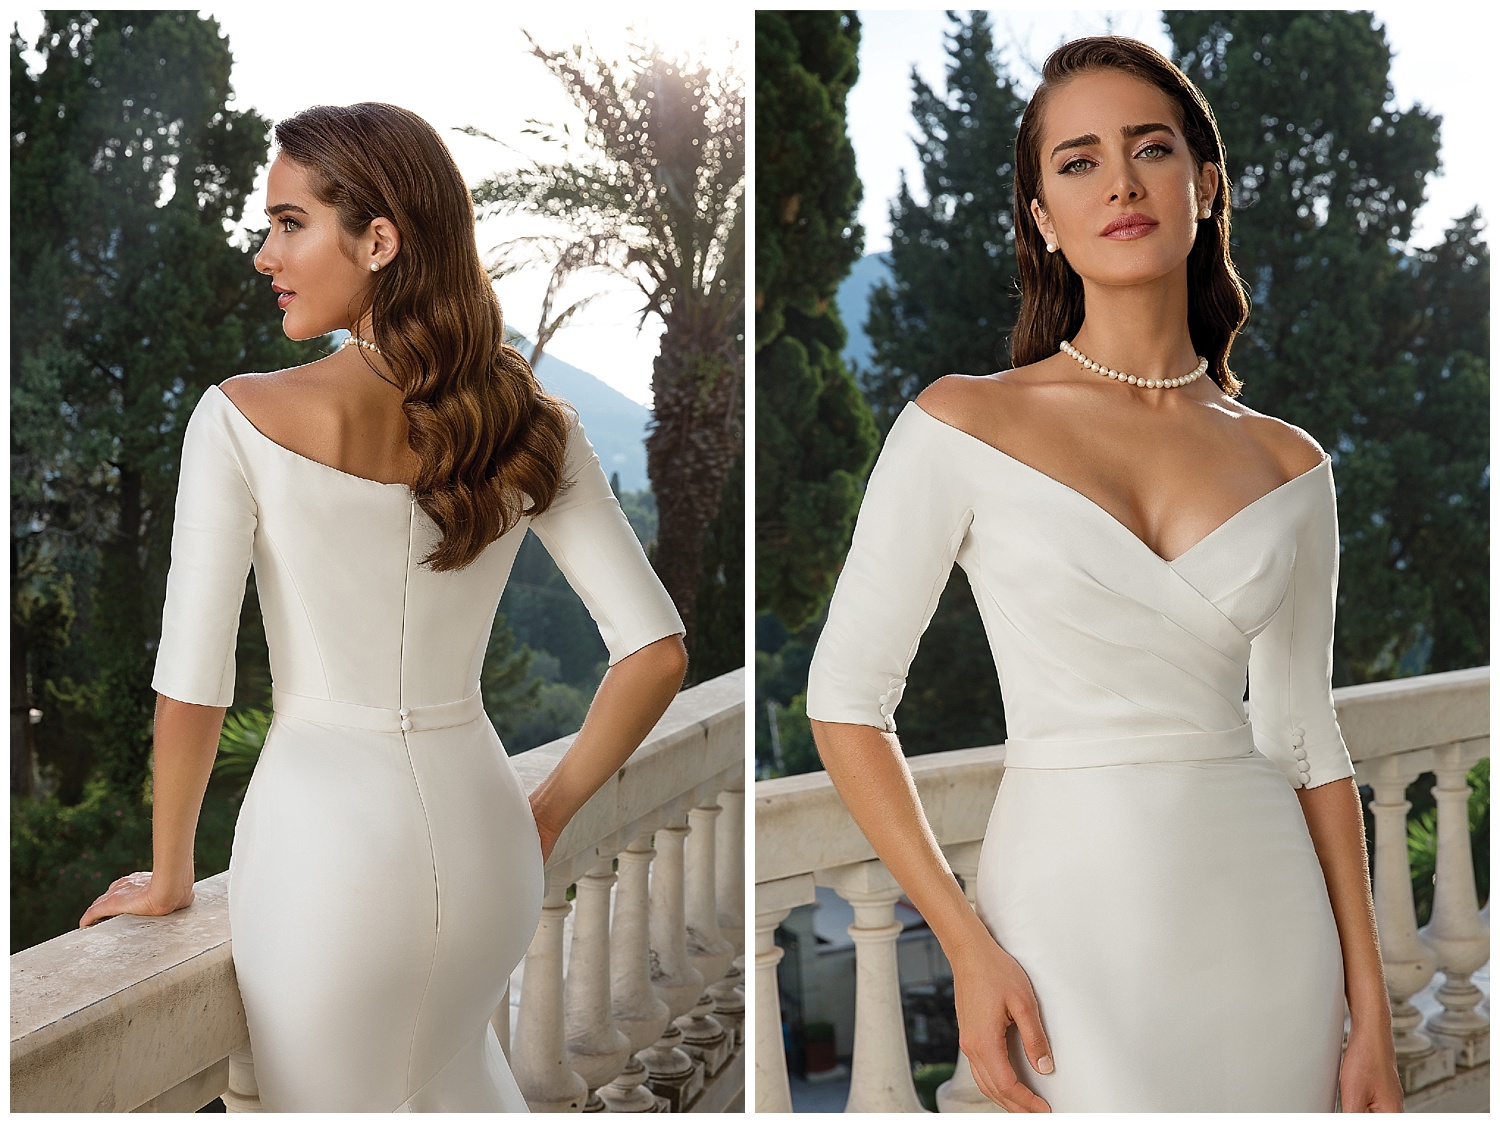 justin-alexander-88079-off-shoulder-with-sleeves-fitted-wedding-dress-epiphany-boutique-carmel-california.jpg